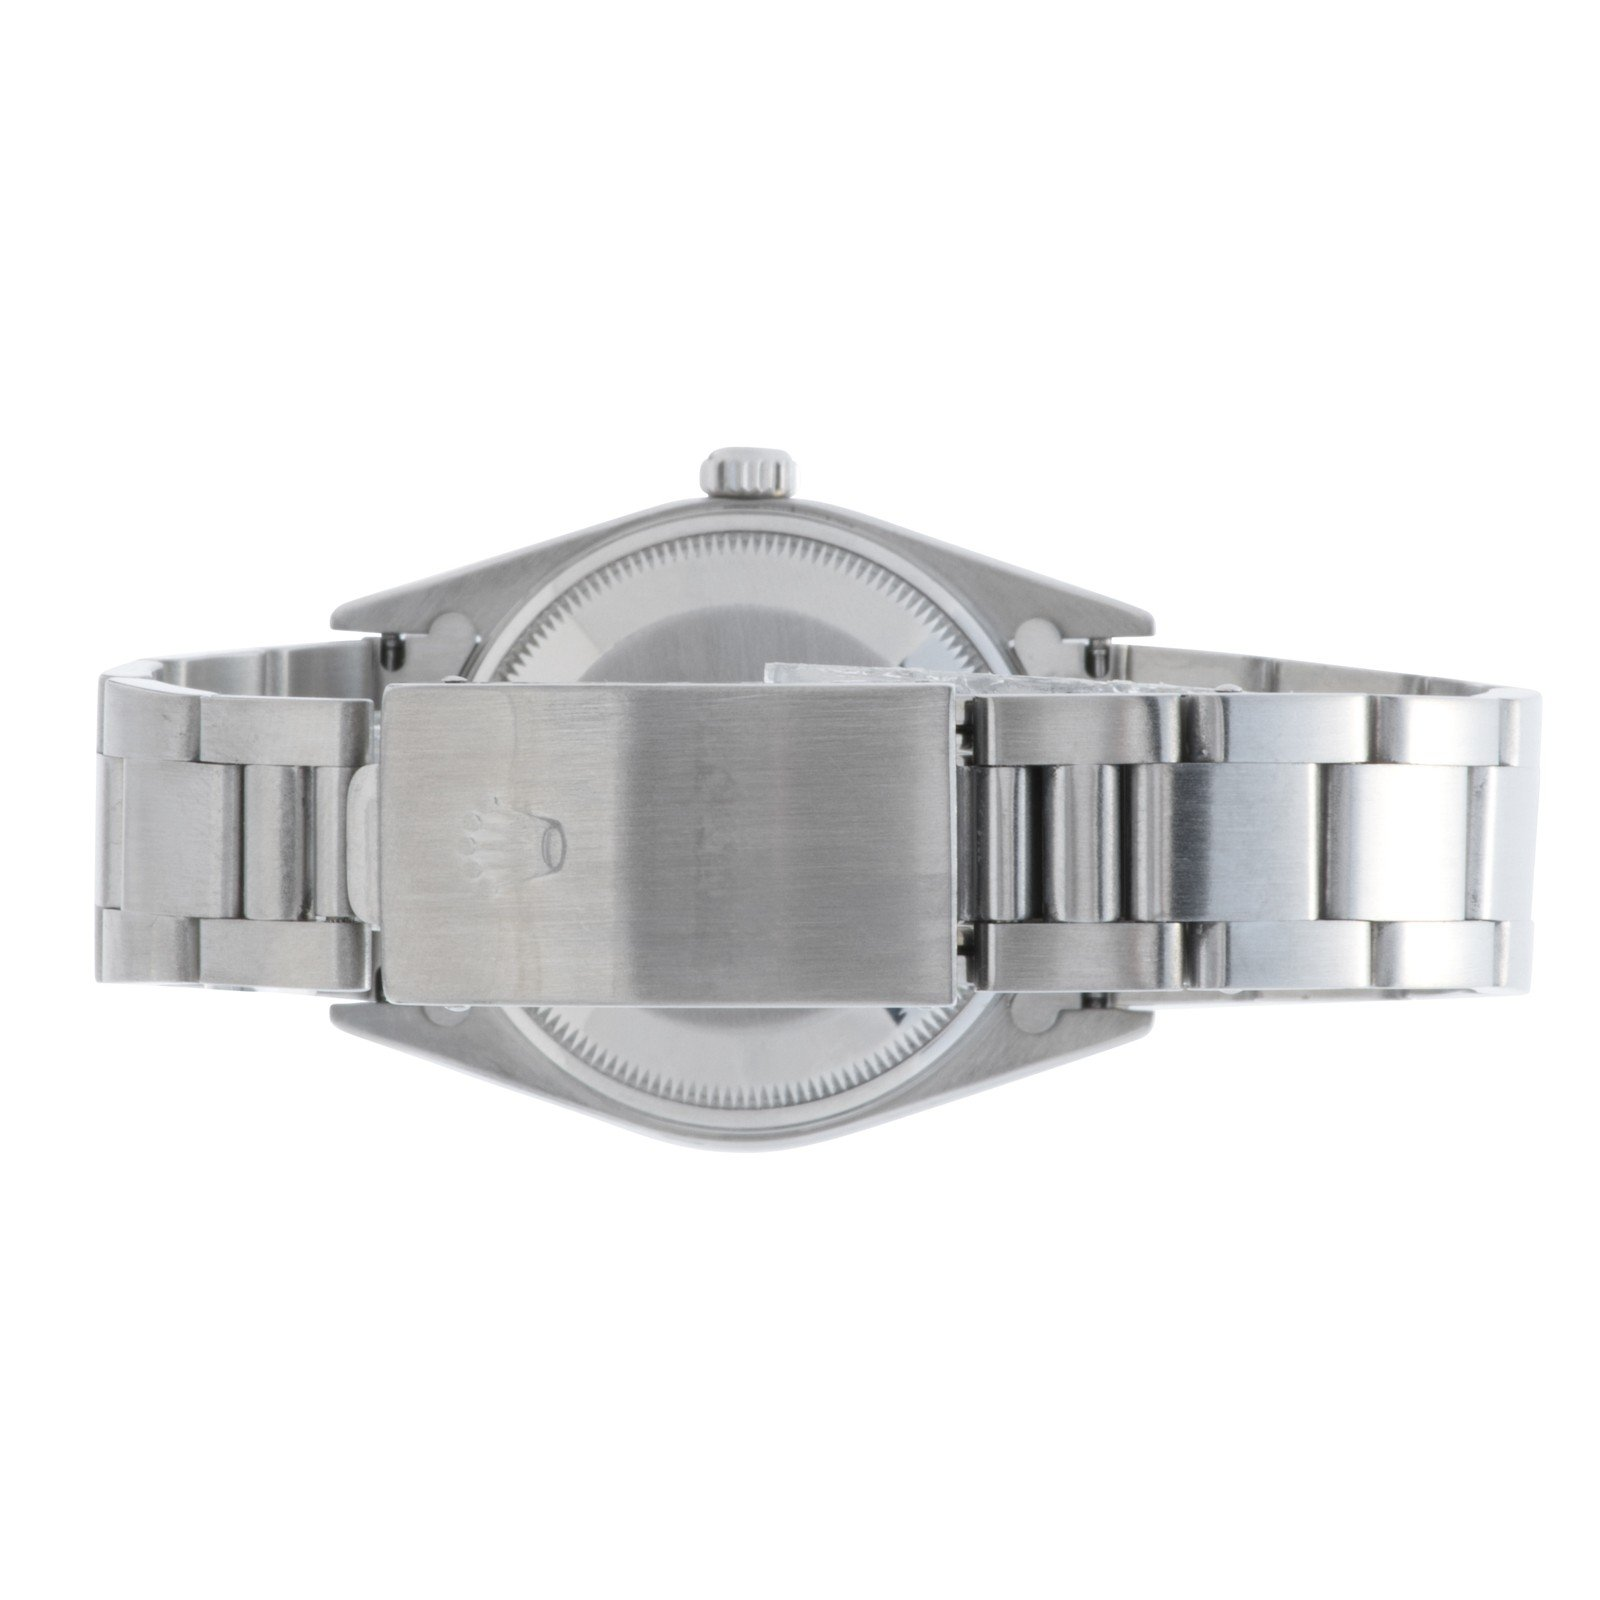 Rolex Datejust automatic-self-wind mens Watch 15200 (Certified Pre-owned) by Rolex (Image #2)